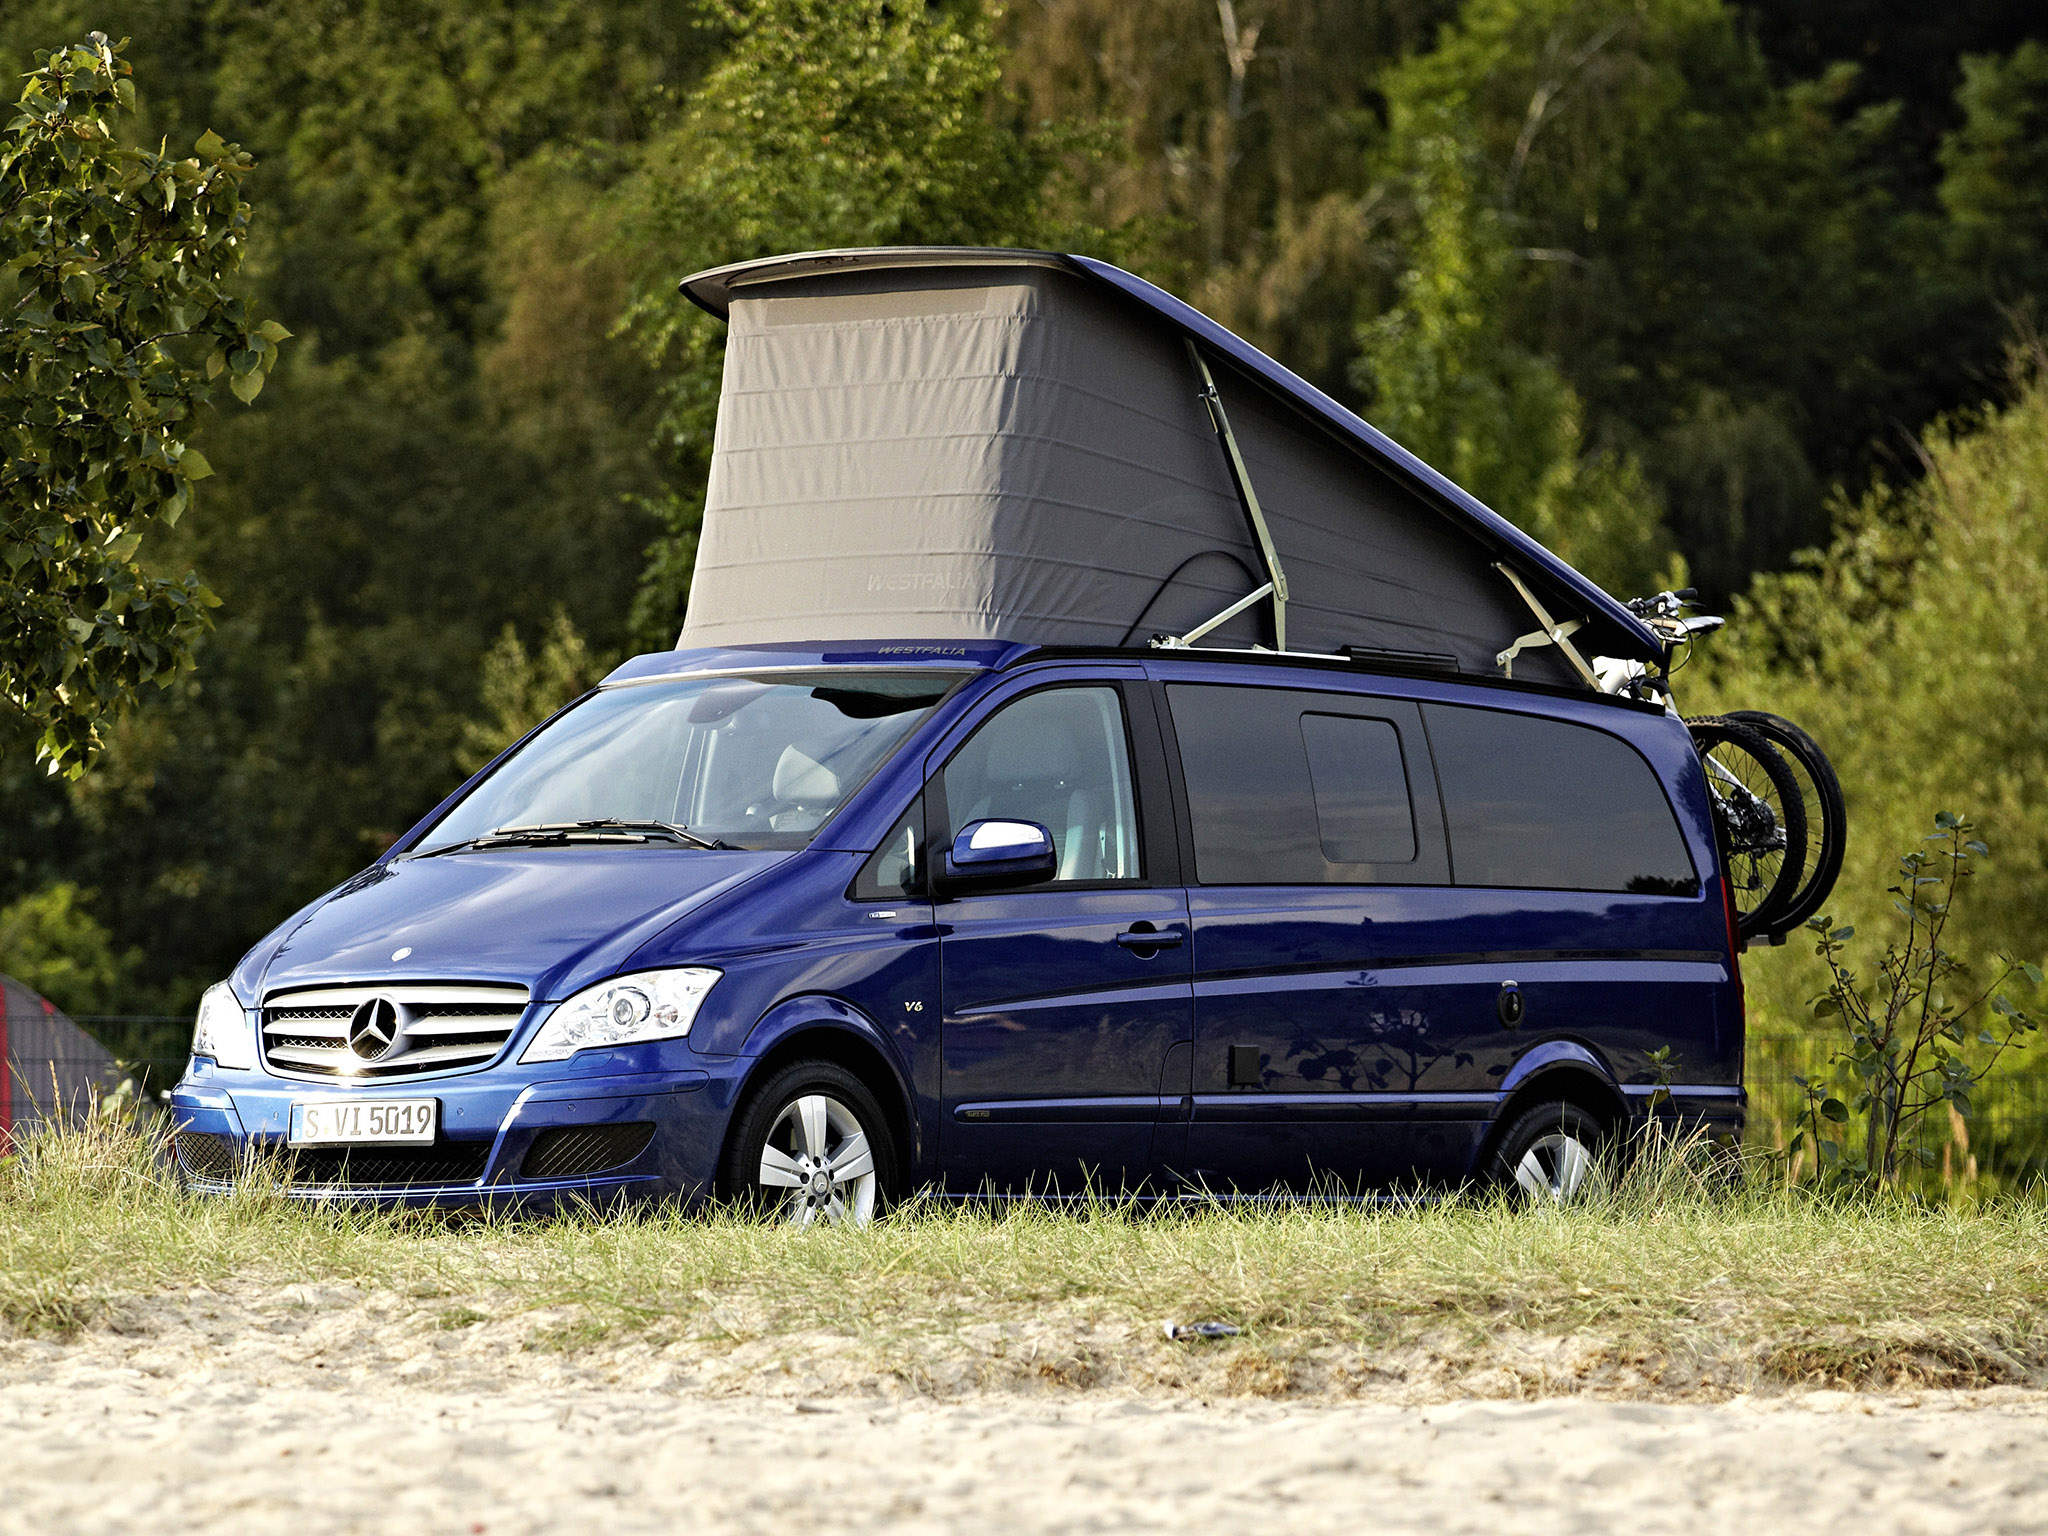 mercedes viano marco polo 2010 mercedes viano marco polo 2010 photo 19 car in pictures car. Black Bedroom Furniture Sets. Home Design Ideas